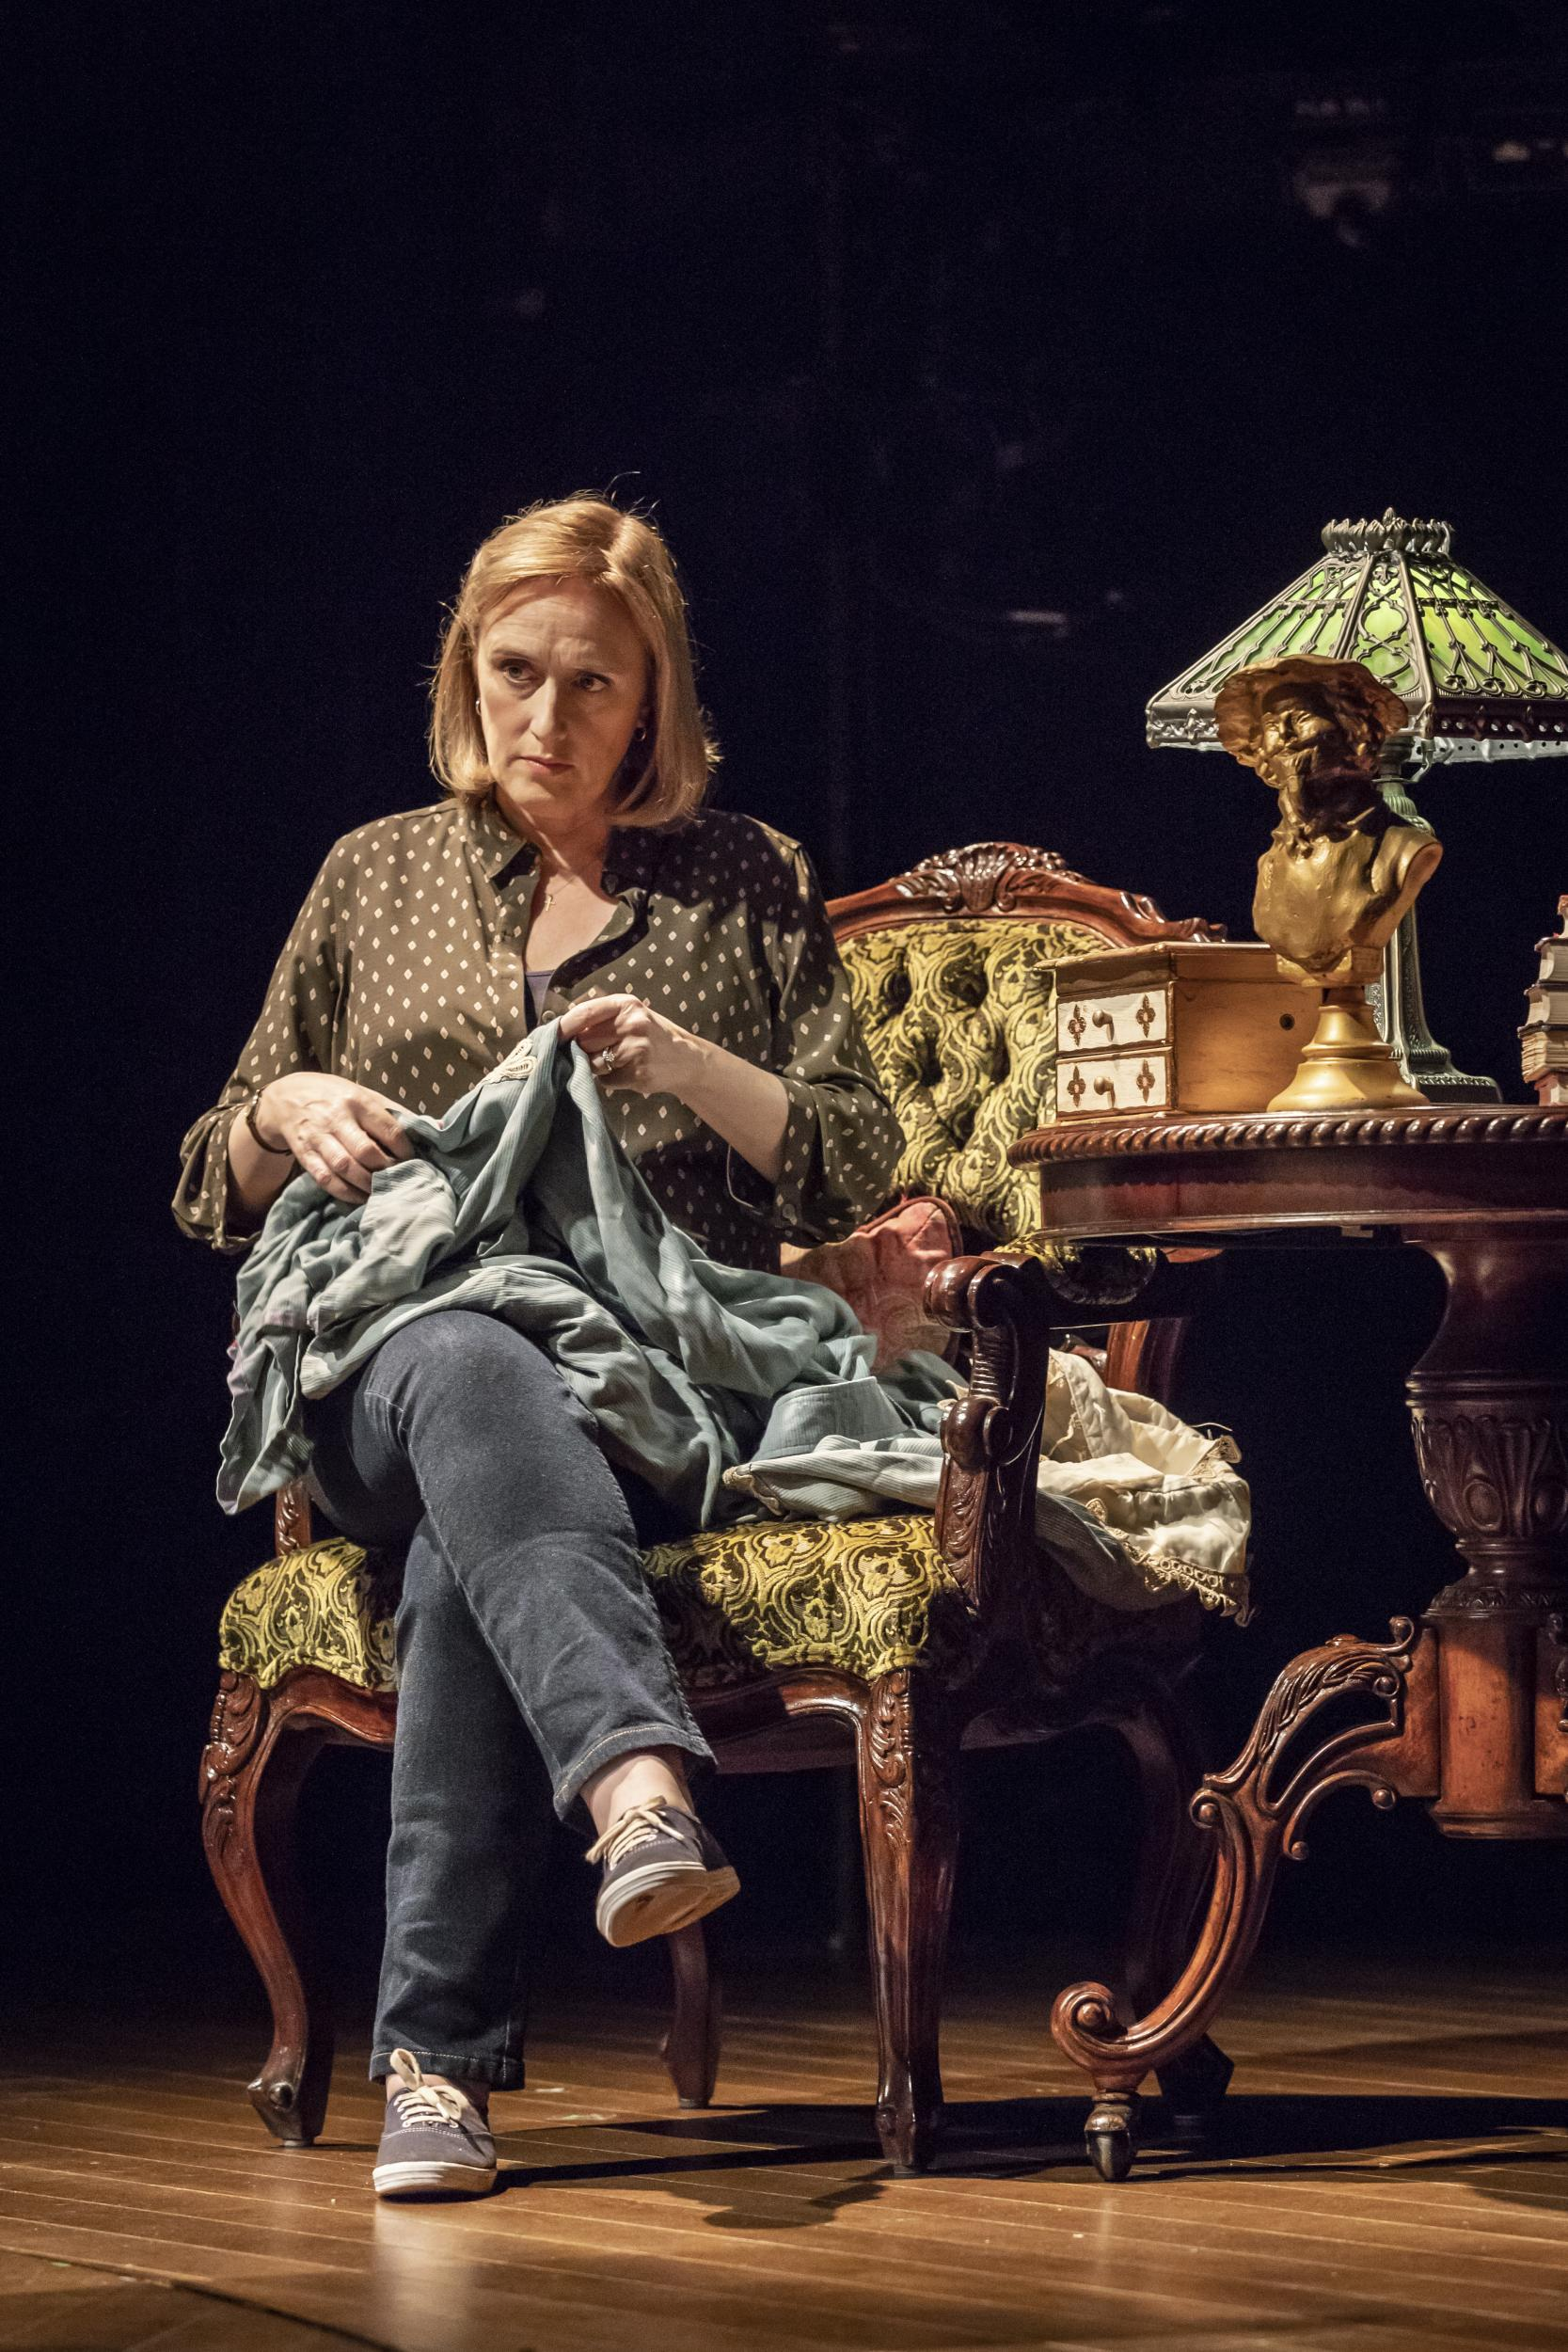 Jenna Russell on Fun Home, the musical version of Alison